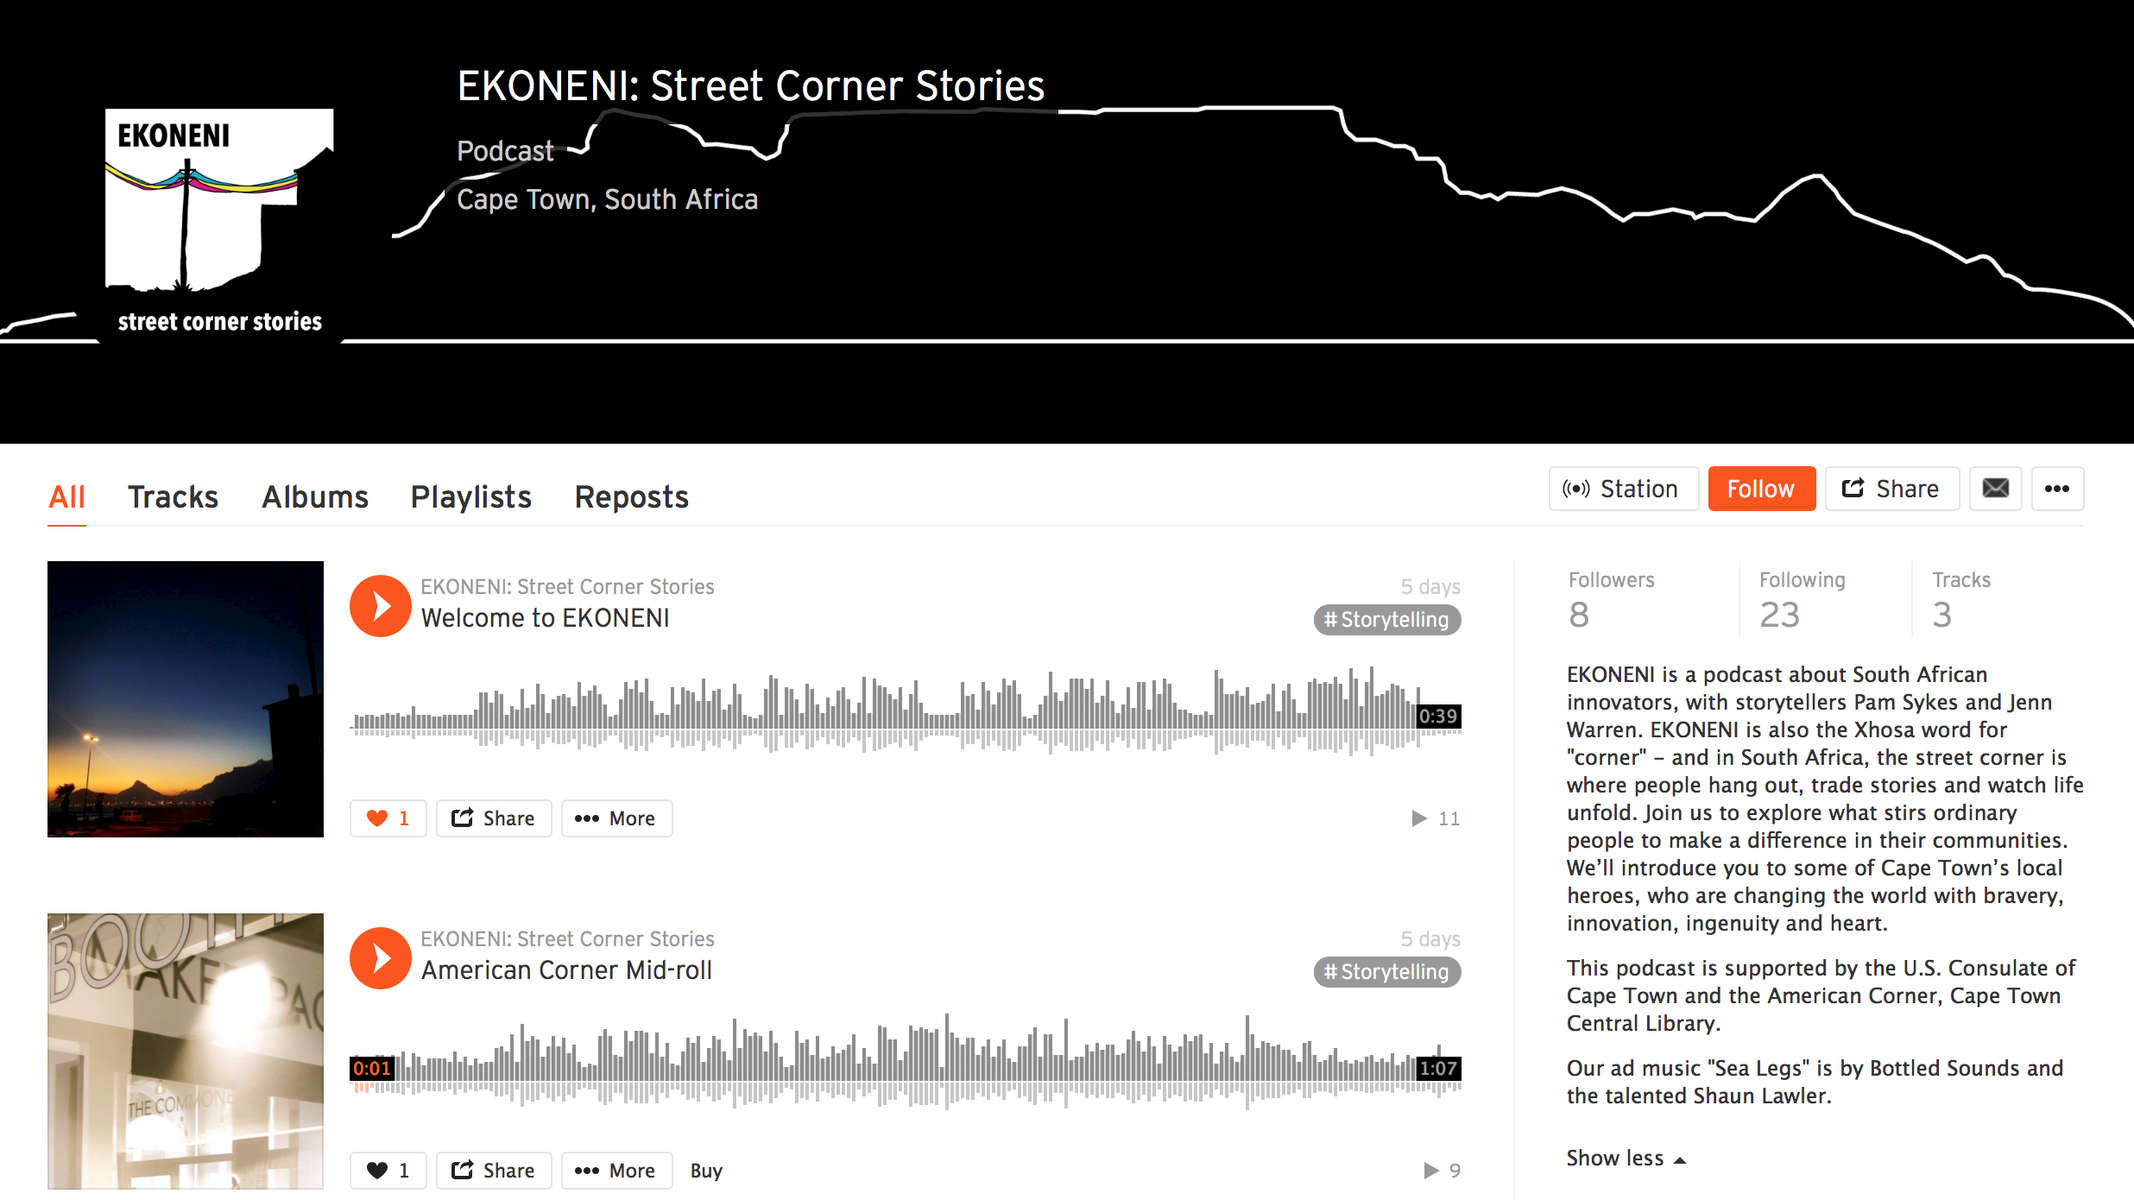 EKONENI is a podcast about South African innovators, by storytellers Pam Sykes and Jenn Warren. EKONENI is also the Xhosa word for {quote}corner{quote} - and in South Africa, the street corner is where people hang out, trade stories and watch life unfold. Join us to explore what stirs ordinary people to make a difference in their communities. We'll introduce you to some of Cape Town's local heroes, who are changing the world with bravery, innovation, ingenuity and heart.This podcast is supported by the U.S. Consulate of Cape Town and the American Corner, Cape Town Central Library. Ad music courtesy of Bottled Sounds and Shaun Lawler.Follow us on iTunes, Stitcher and RadioPublic.